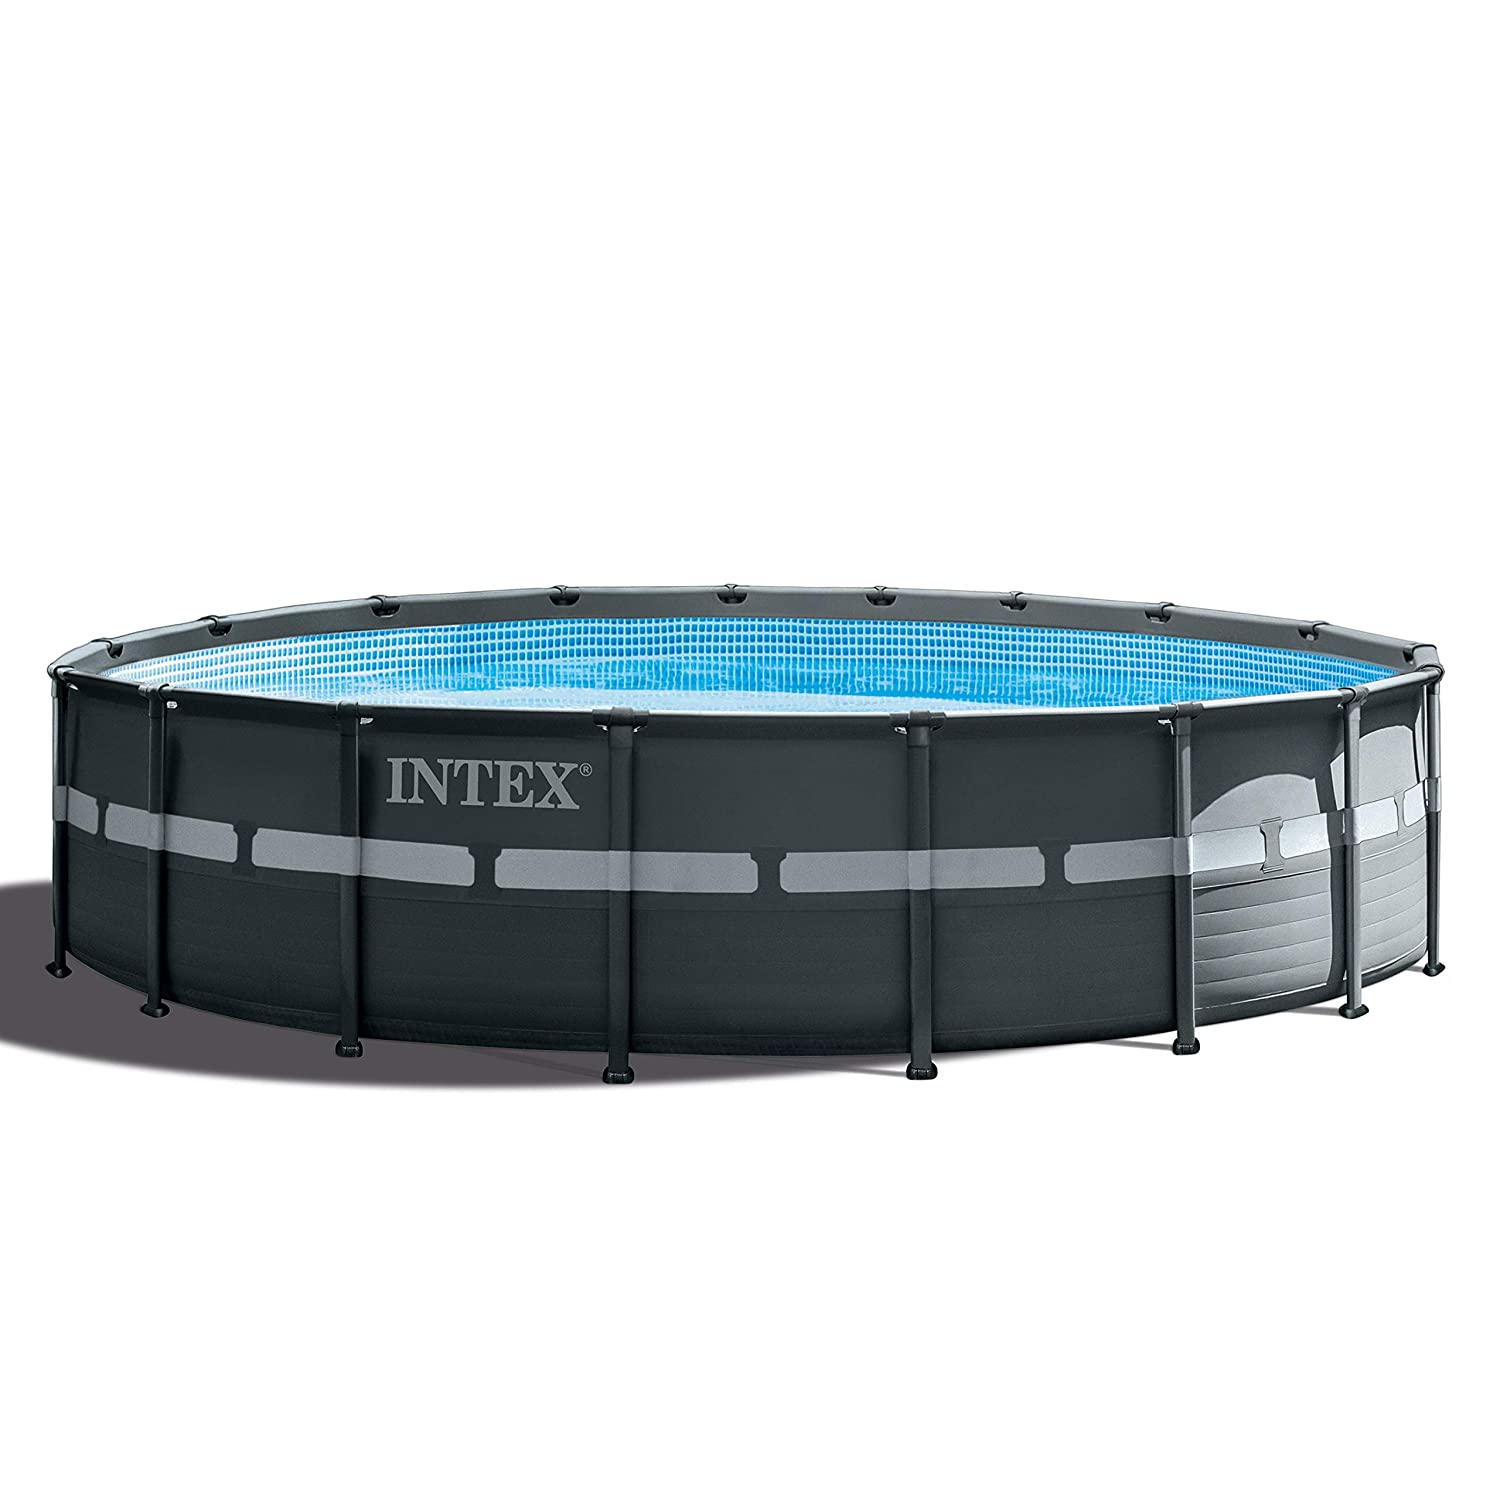 Top 10 Best Above Ground Pools Reviews in 2020 8